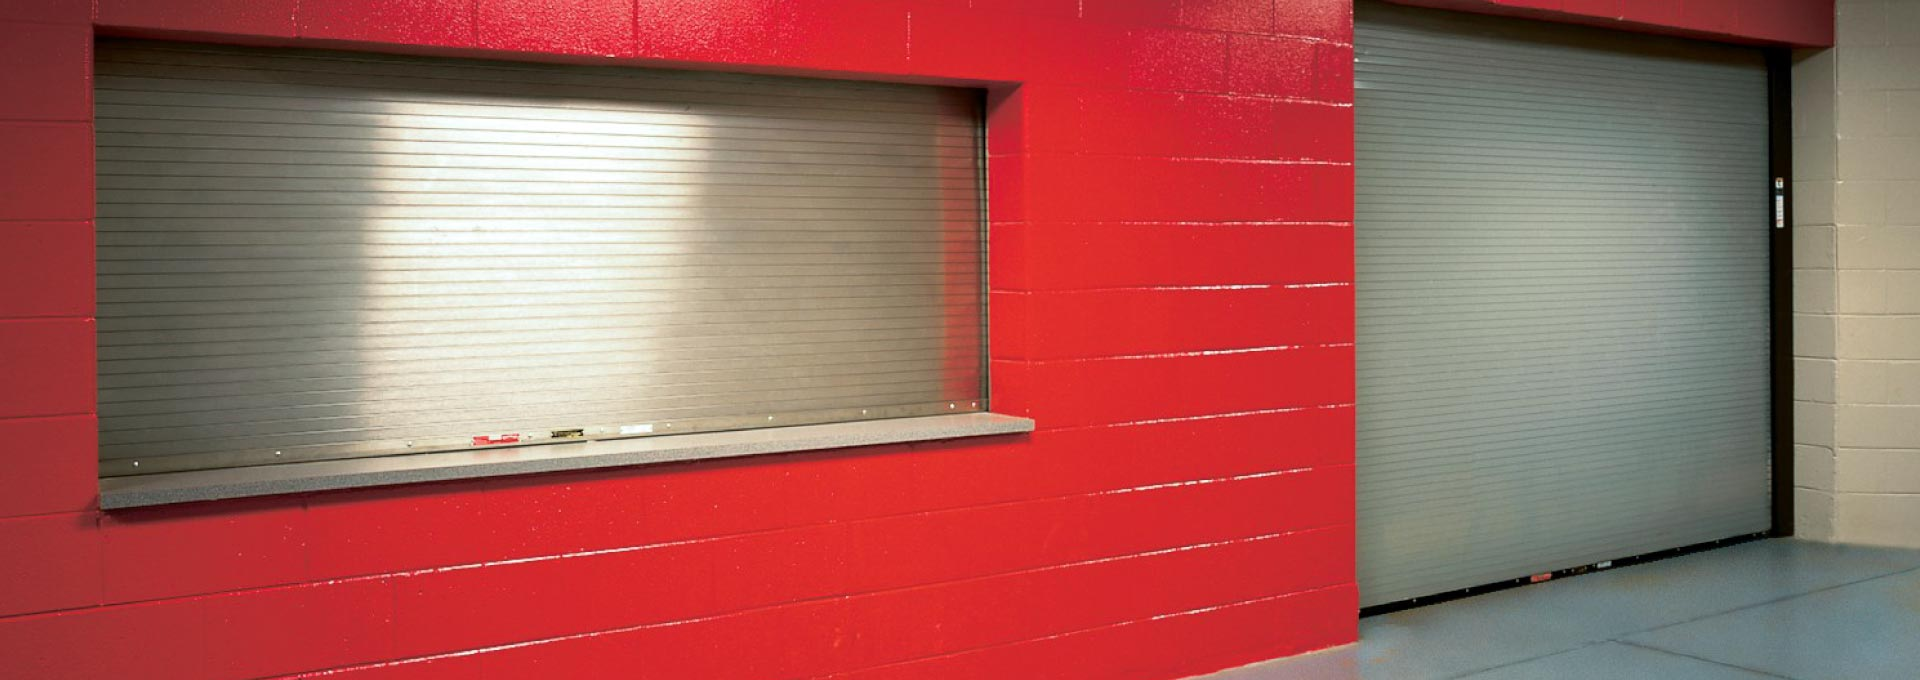 Wide array of rolling steel doors to demanding fire-safety standards and discerning aesthetic requirements